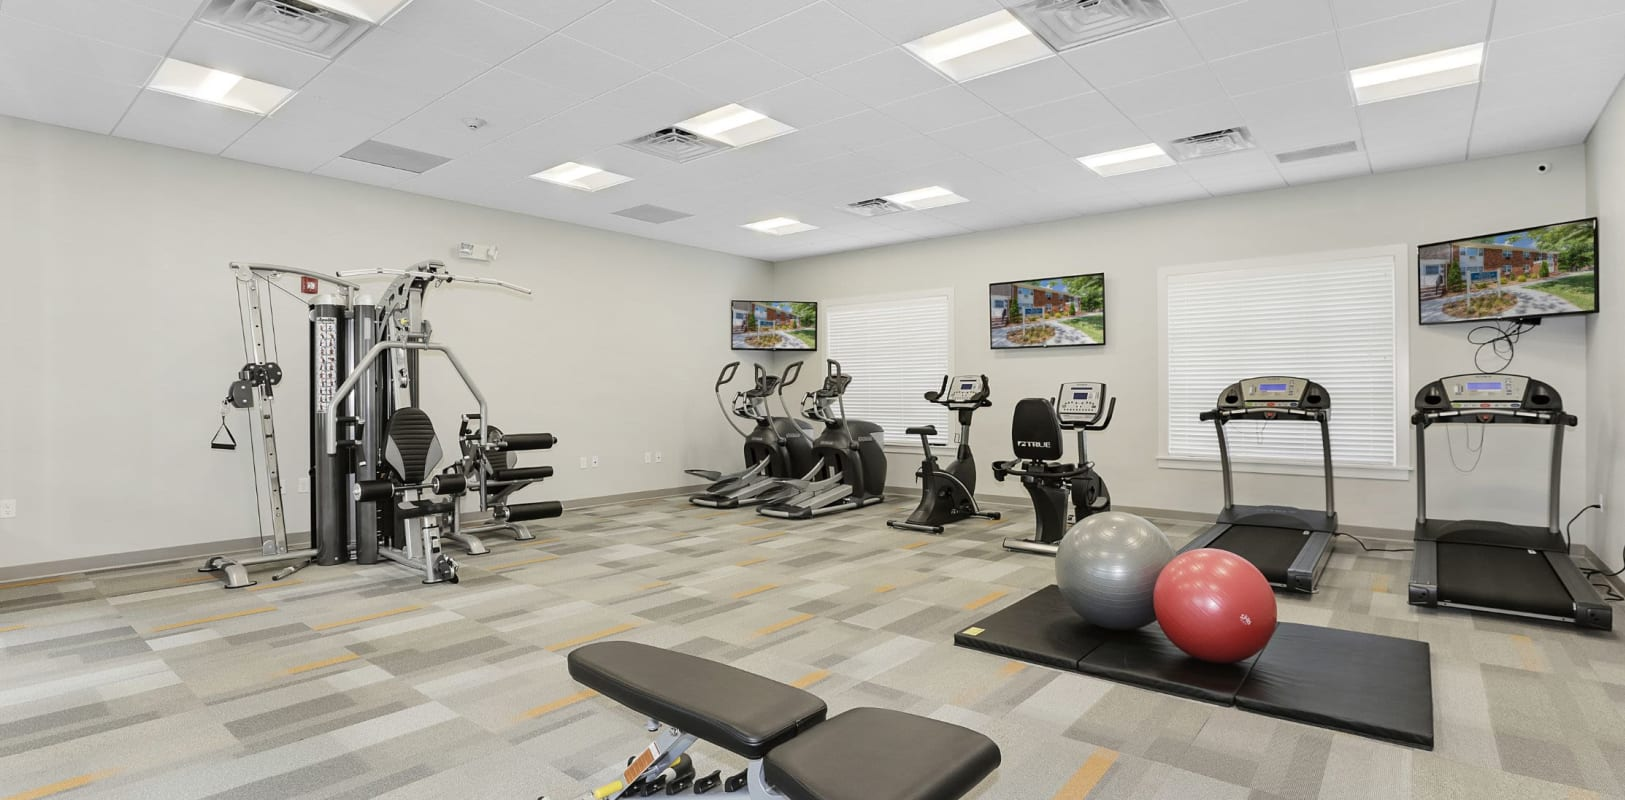 Fully equipped fitness center at Nieuw Amsterdam Village in South Amboy, New Jersey